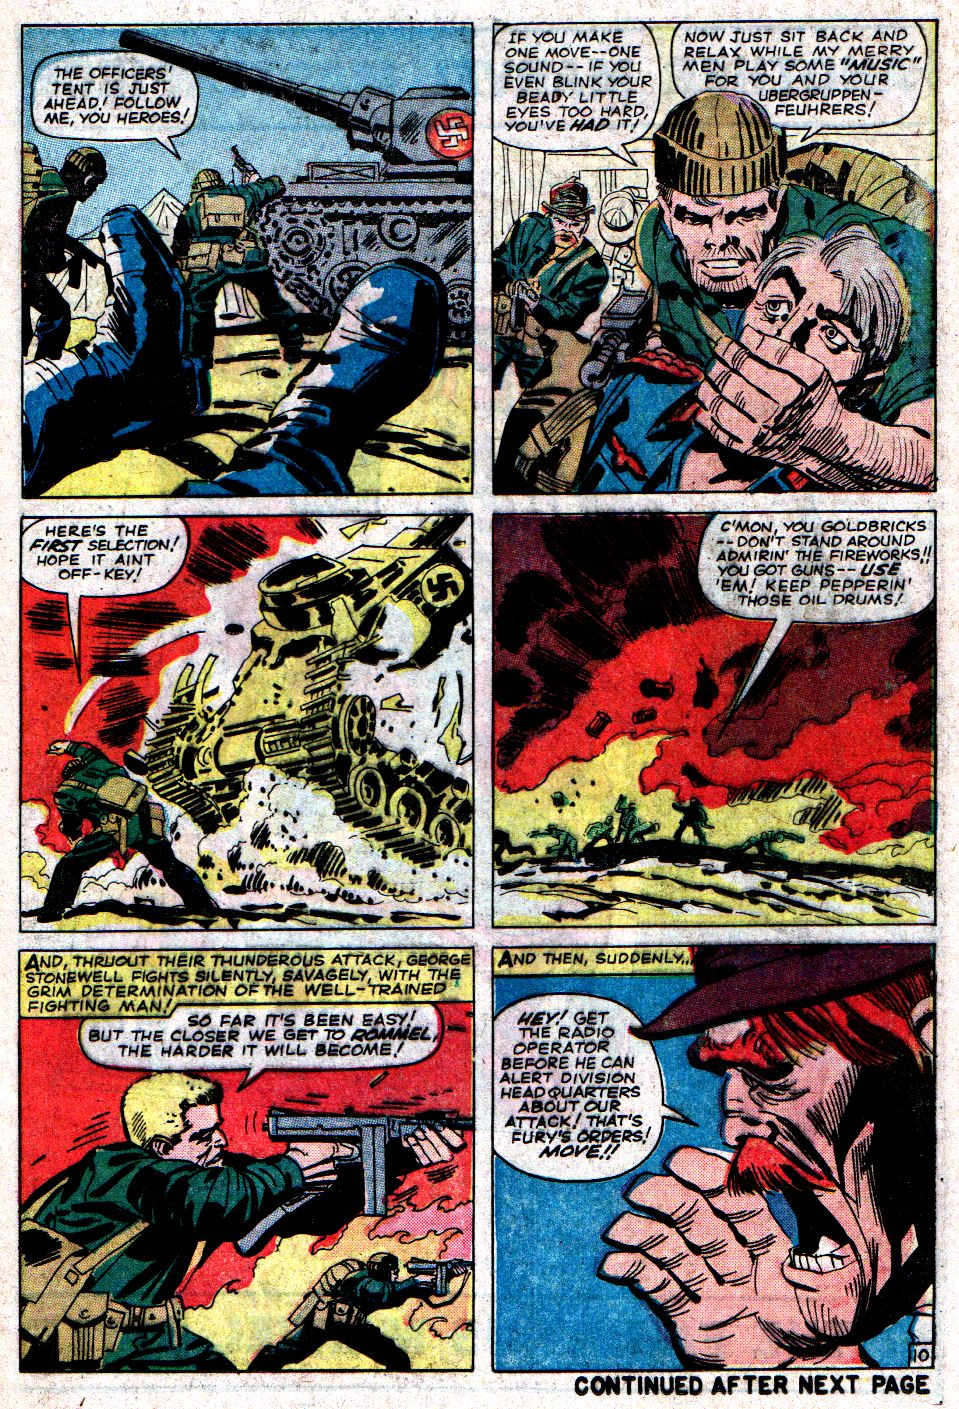 Read online Sgt. Fury comic -  Issue #6 - 13